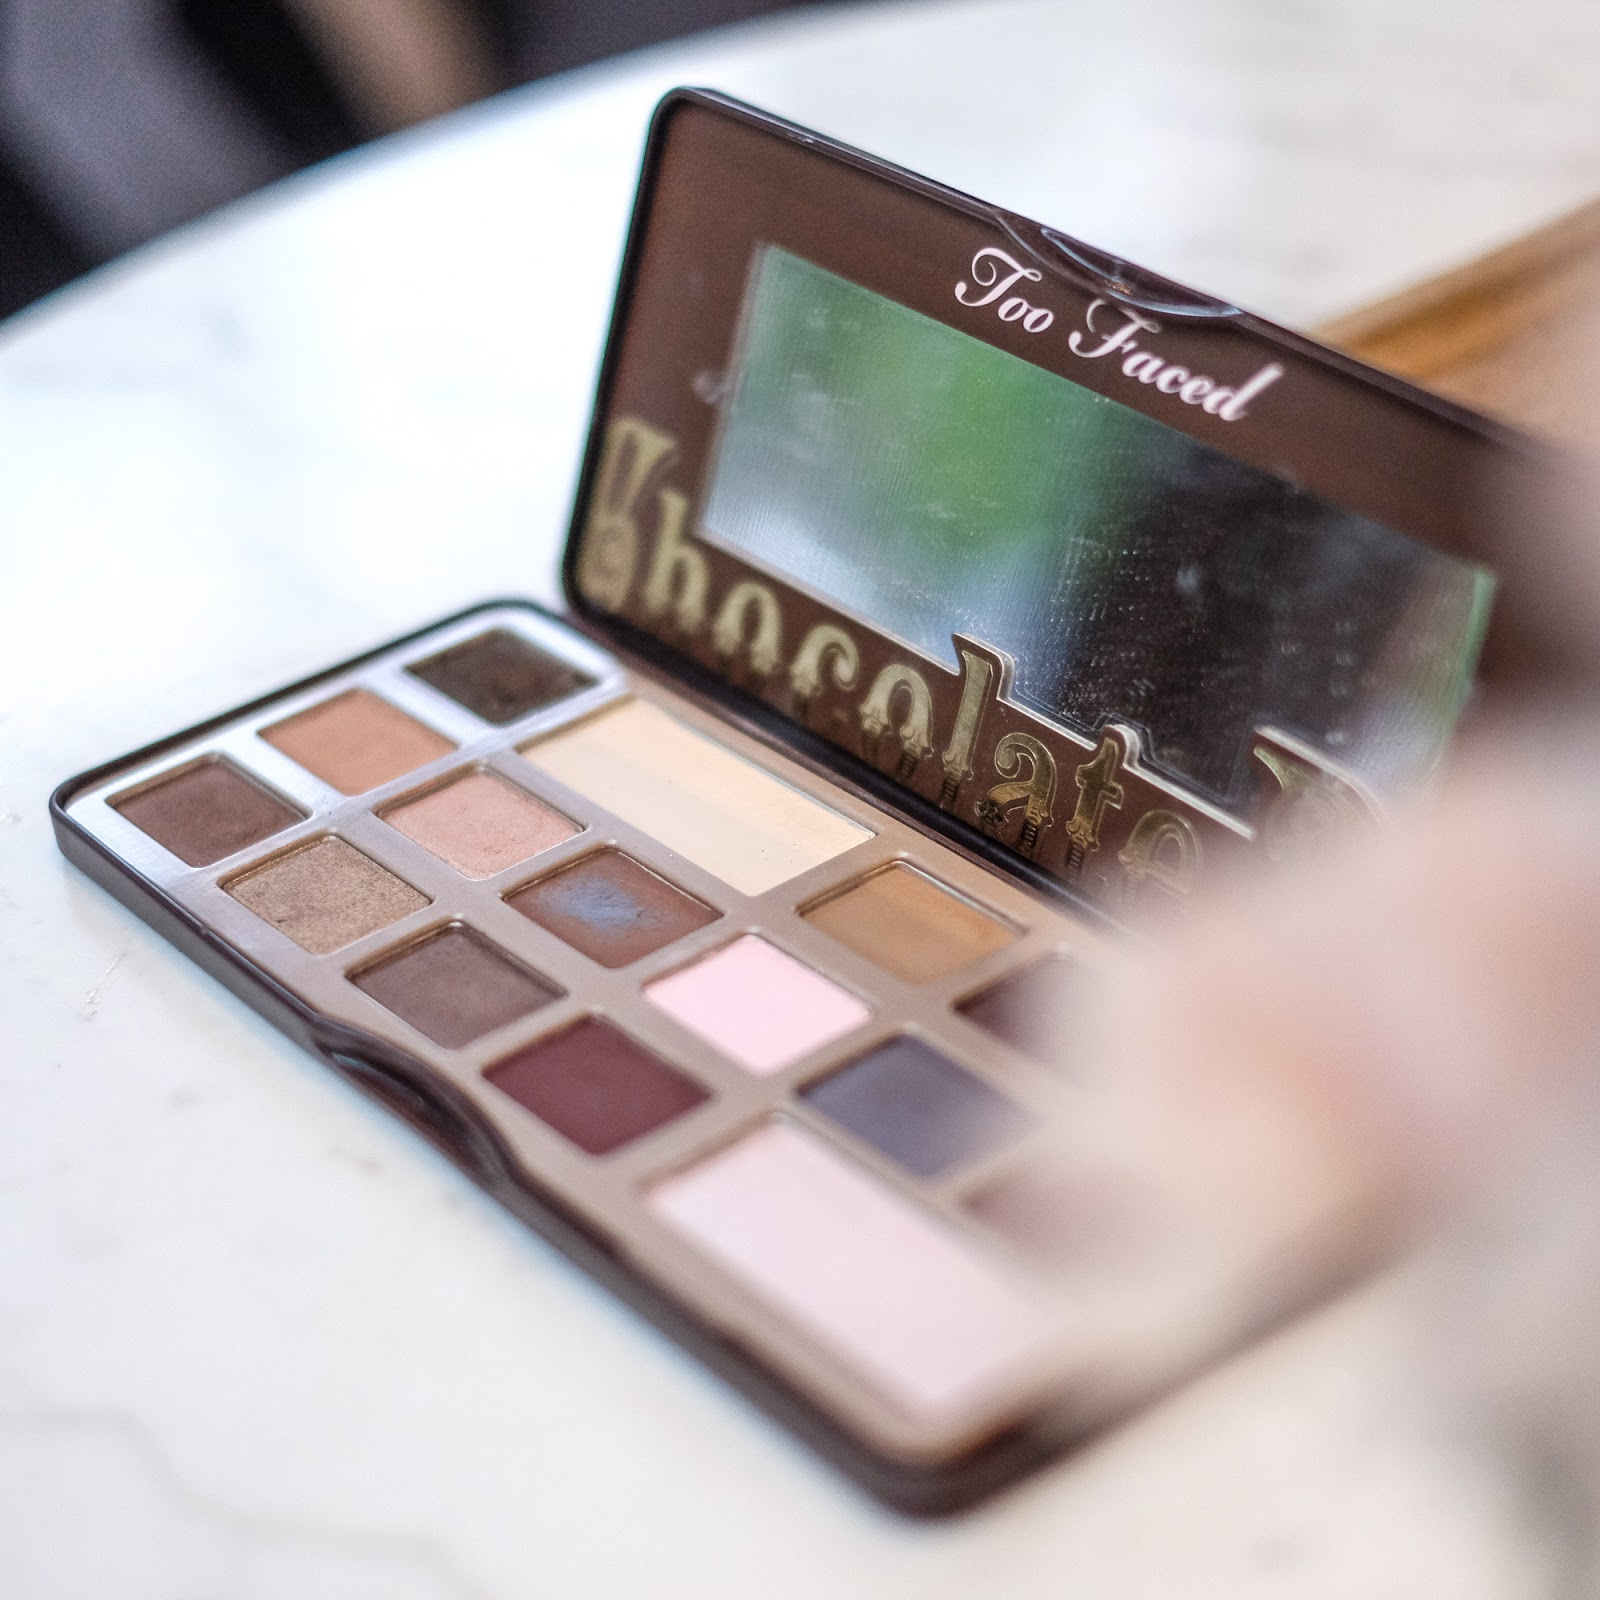 Too Faced Chocolate Bar Review and Swatch